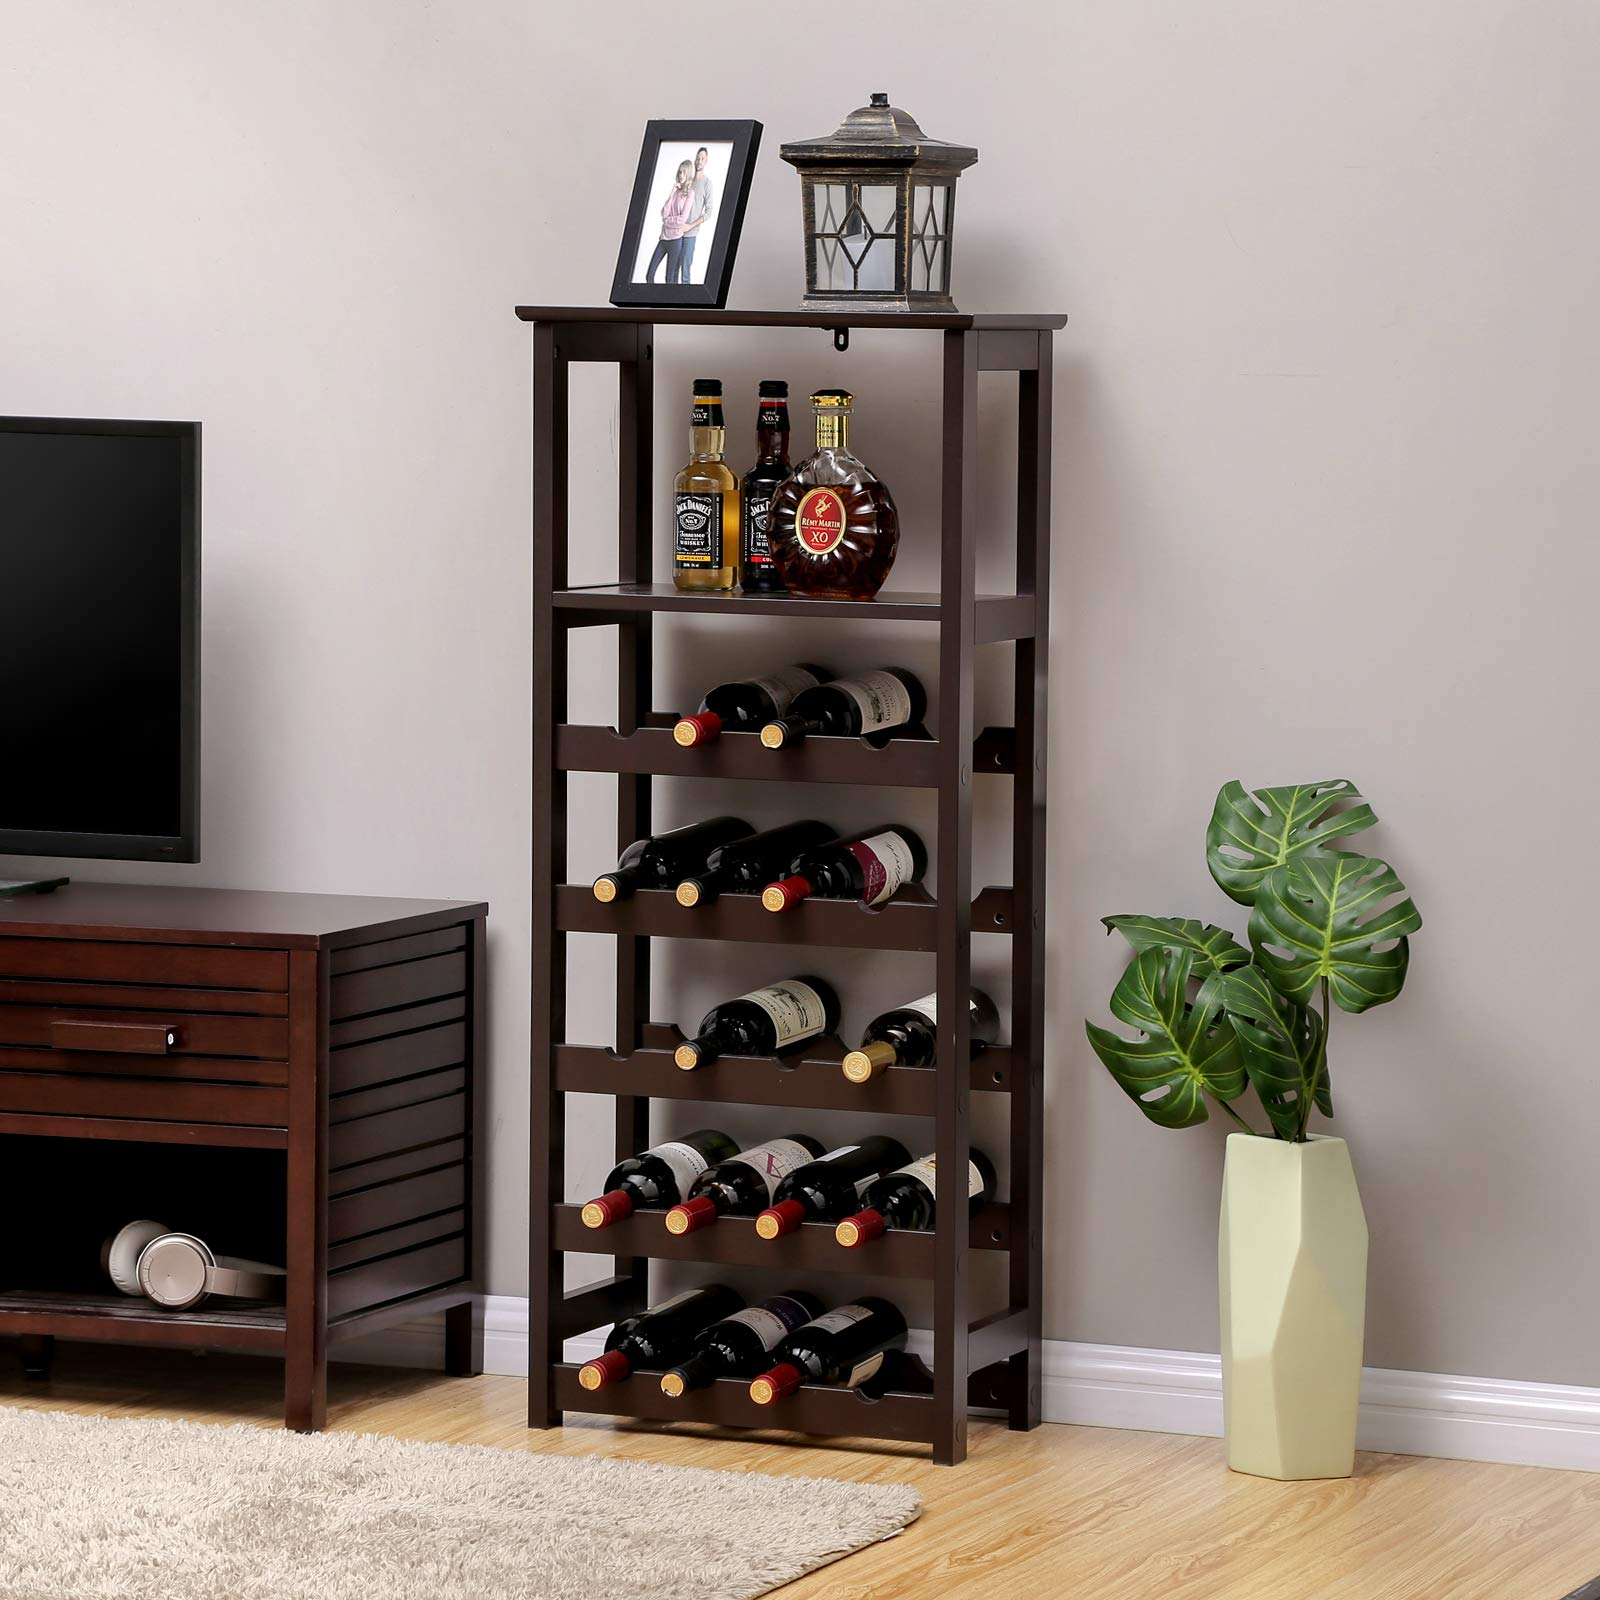 VASAGLE 20 Wooden Wine Rack, Free Standing Bottles Display Storage Shelf, with 2 Slatted Shelves,18.4''L × 10.4''W × 42.9''H, Espresso ULWR03BR by VASAGLE (Image #2)